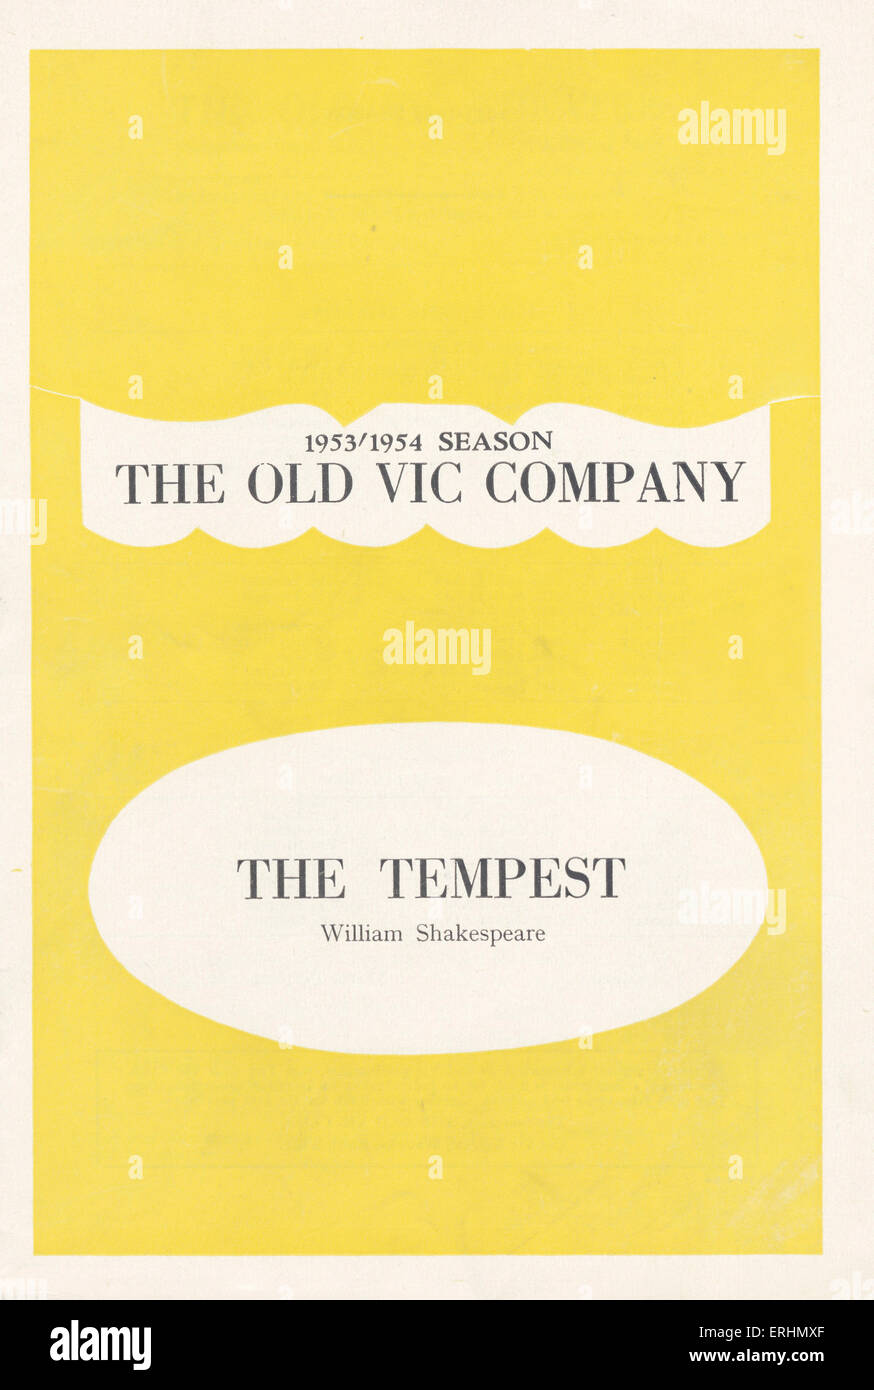 The Tempest - programme cover for William Shakespeare 's play at the Old Vic Theatre, London. 1953-1954 season. - Stock Image